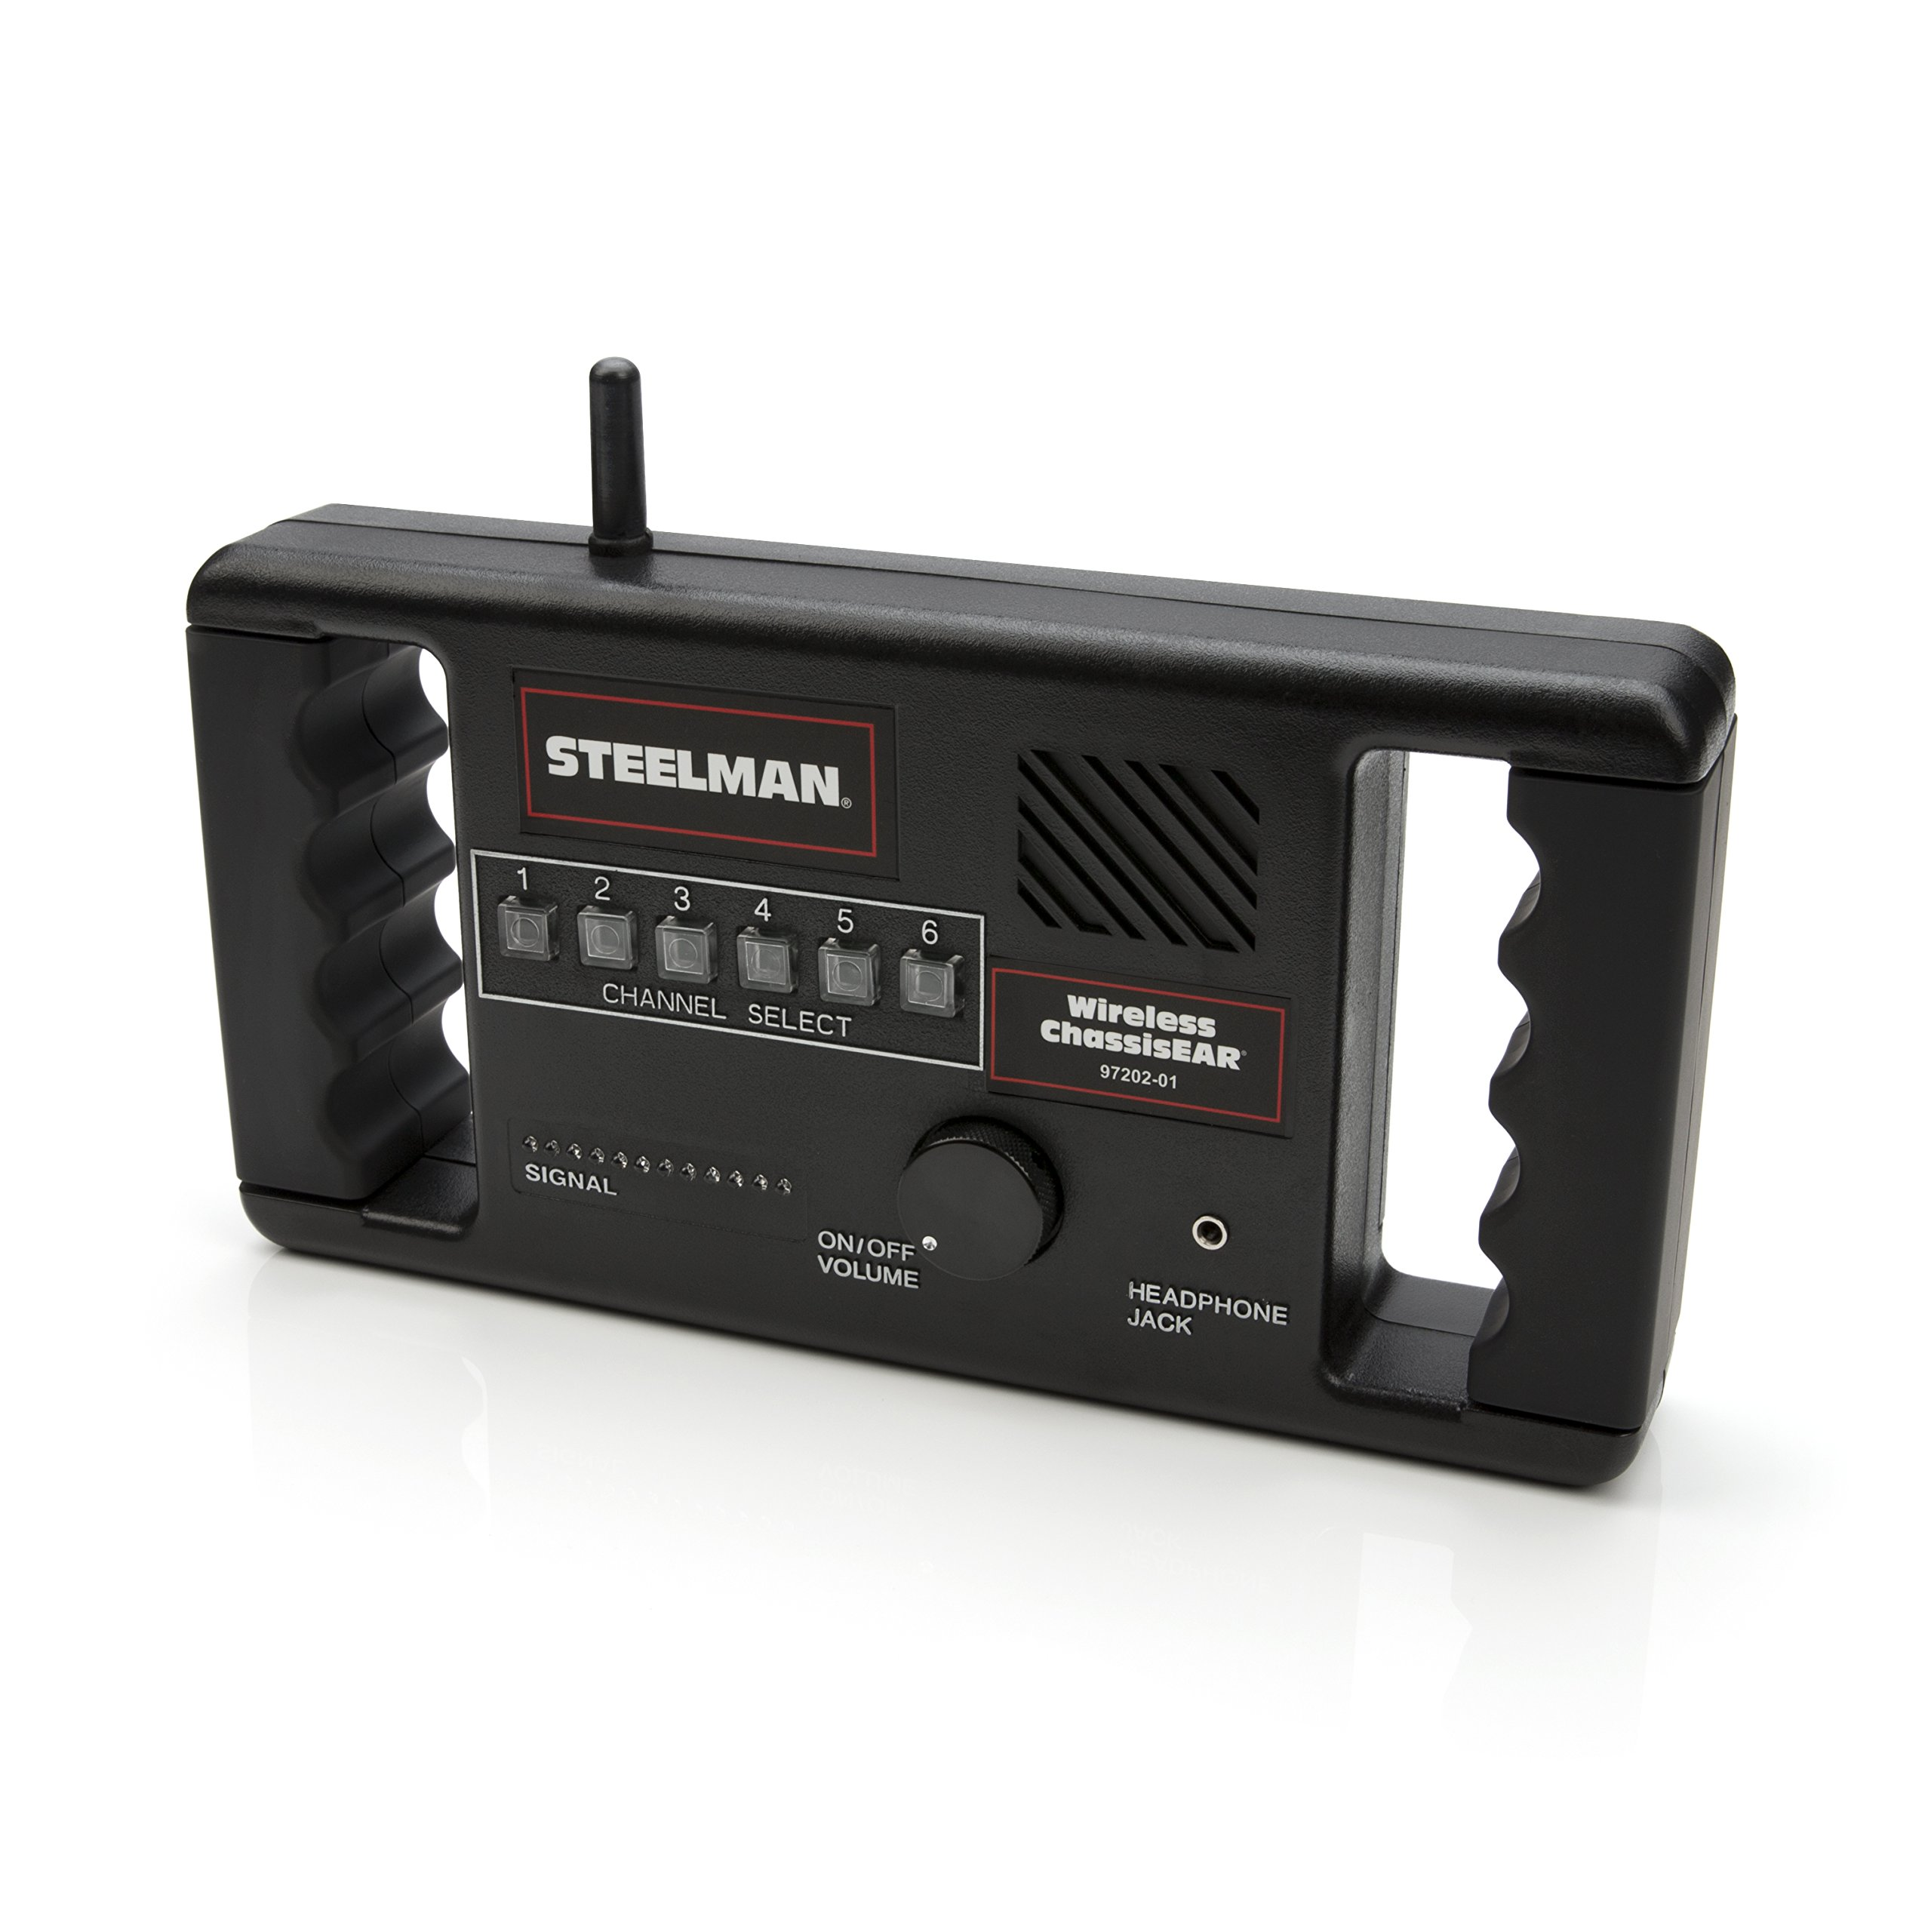 Steelman 97202-01 Replacement Control Box for Wireless ChassisEAR